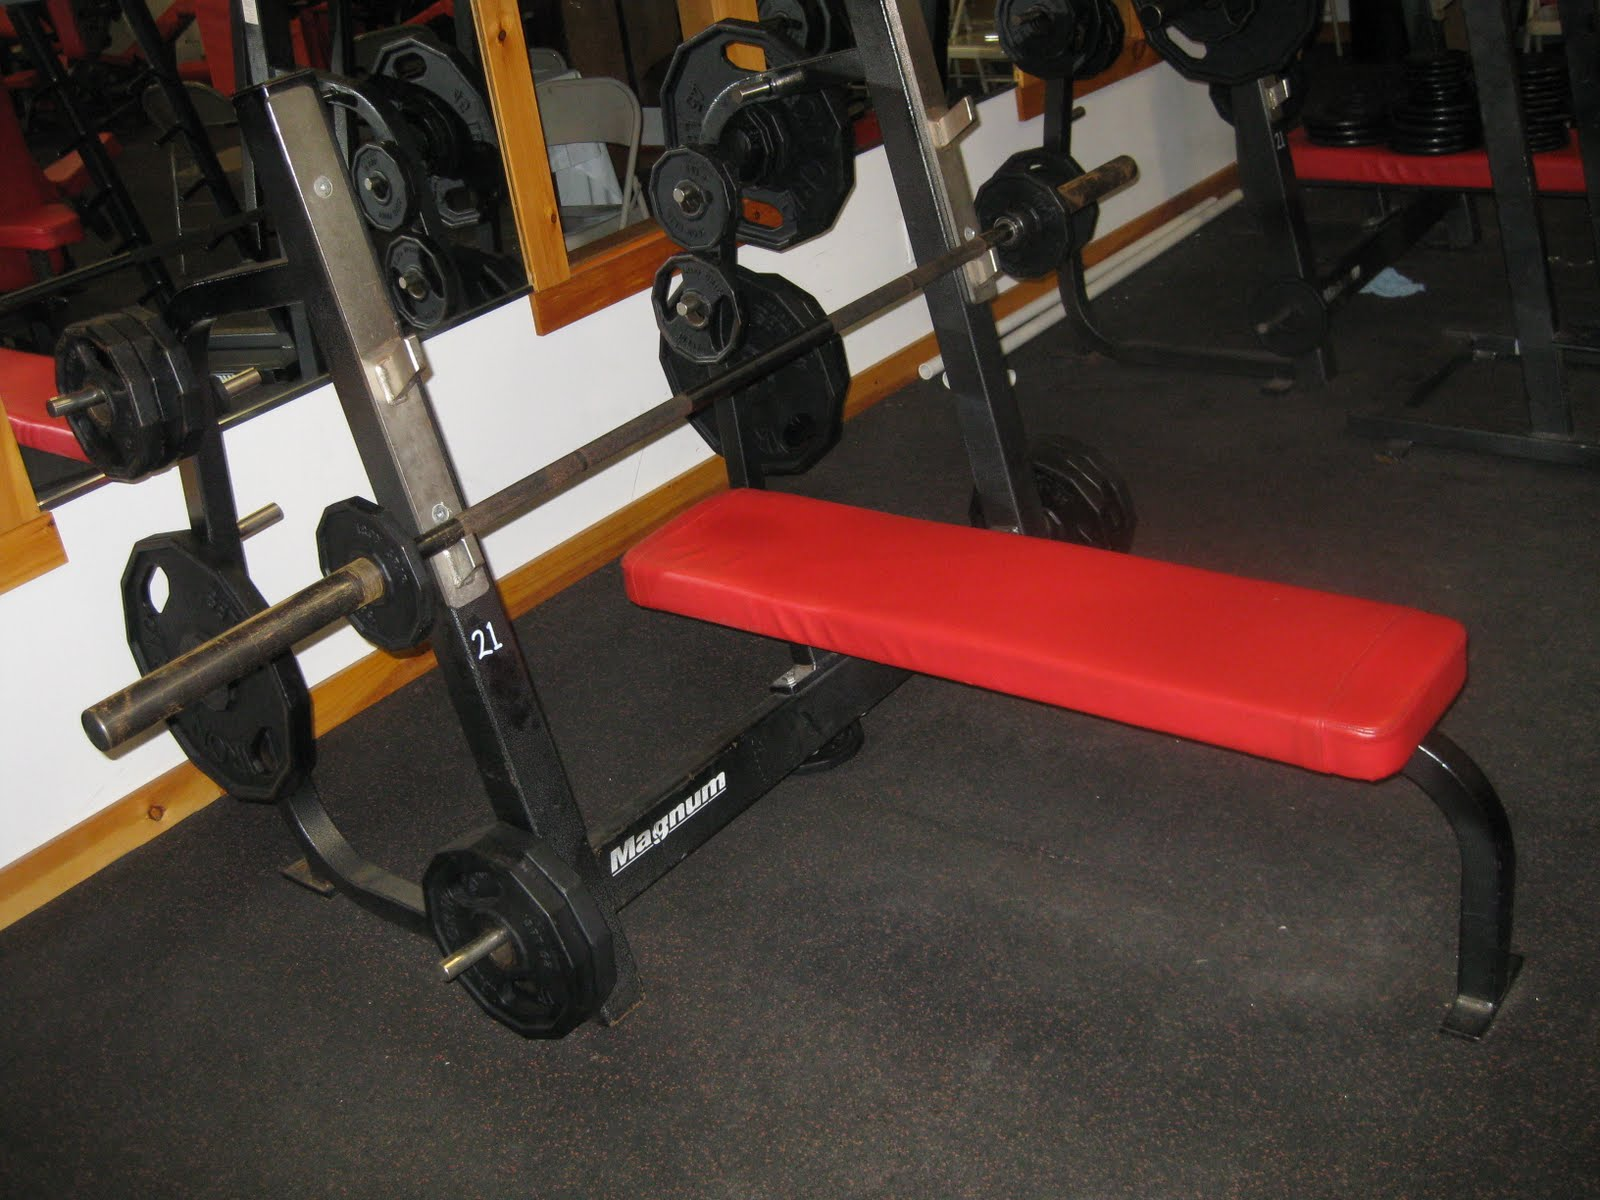 Gym Equipment For Sale Magnum Strength M78 F Bench Press Wstorage 30628